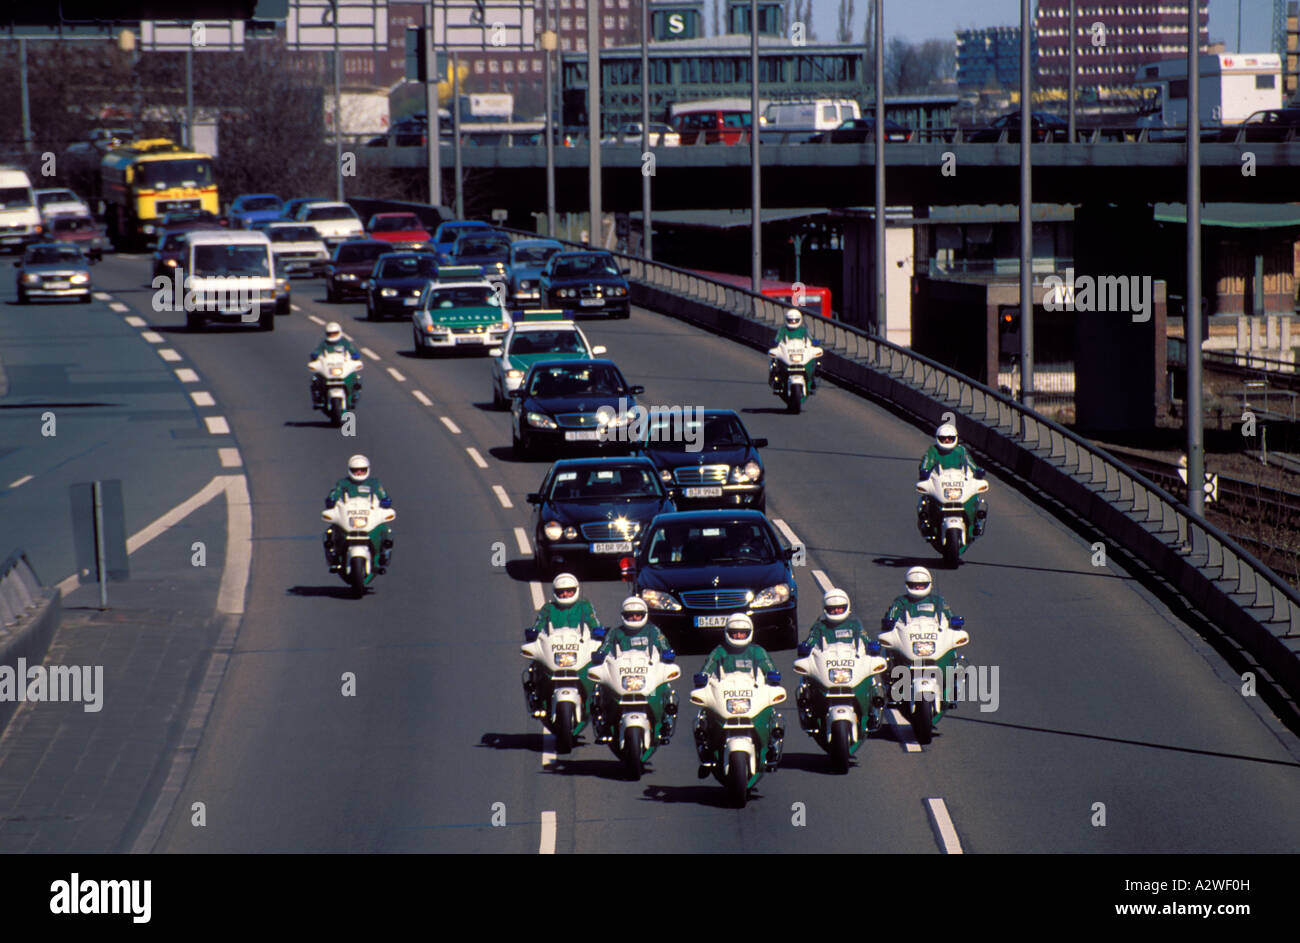 La Reine du Sang [Titans] Germany-berlin-police-escort-vip-motorcade-along-the-motorway-A2WF0H